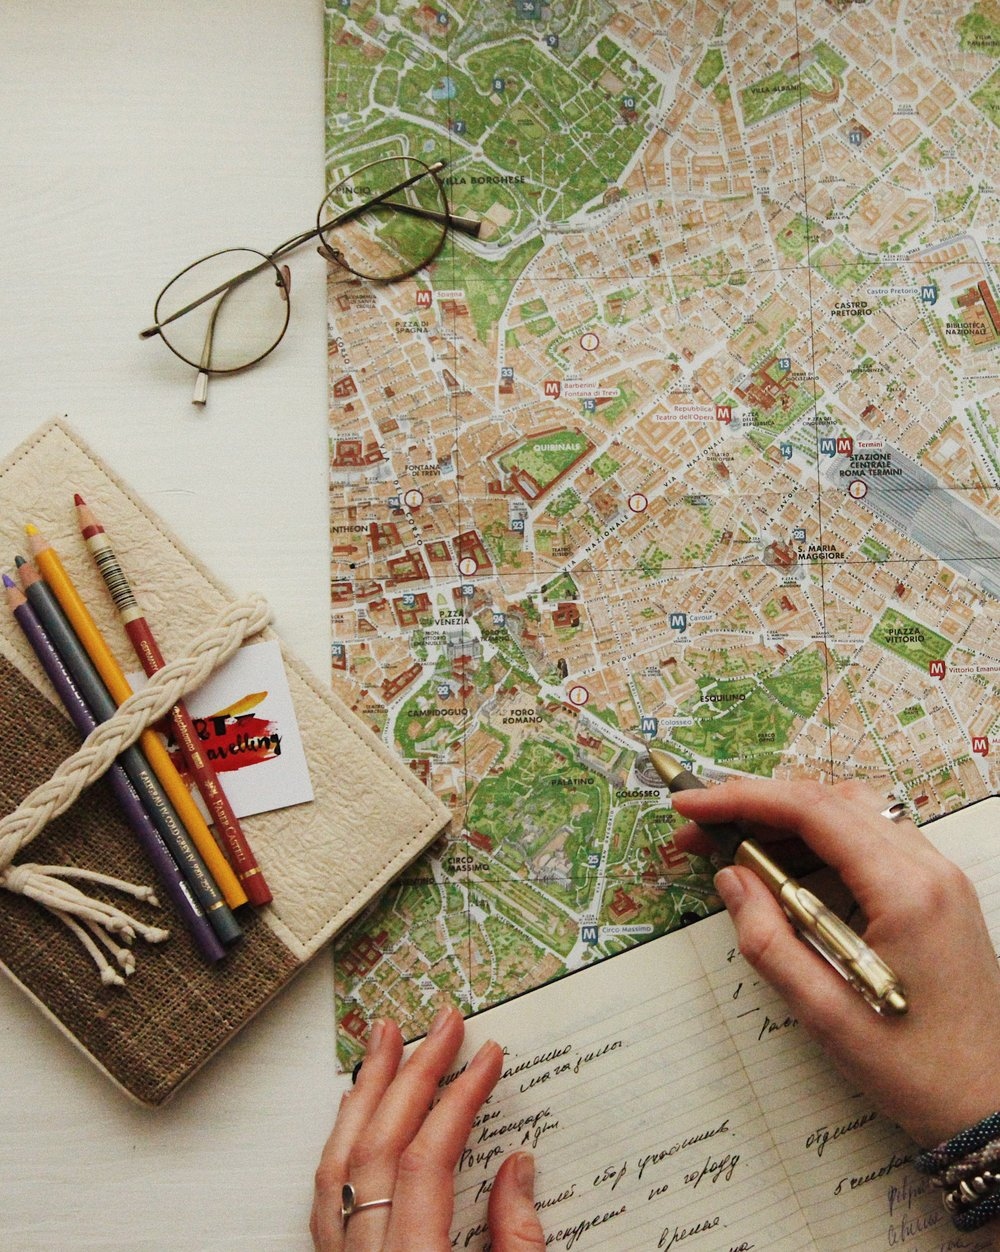 Taking notes on a map. Photo by  oxana v  on  Unsplash